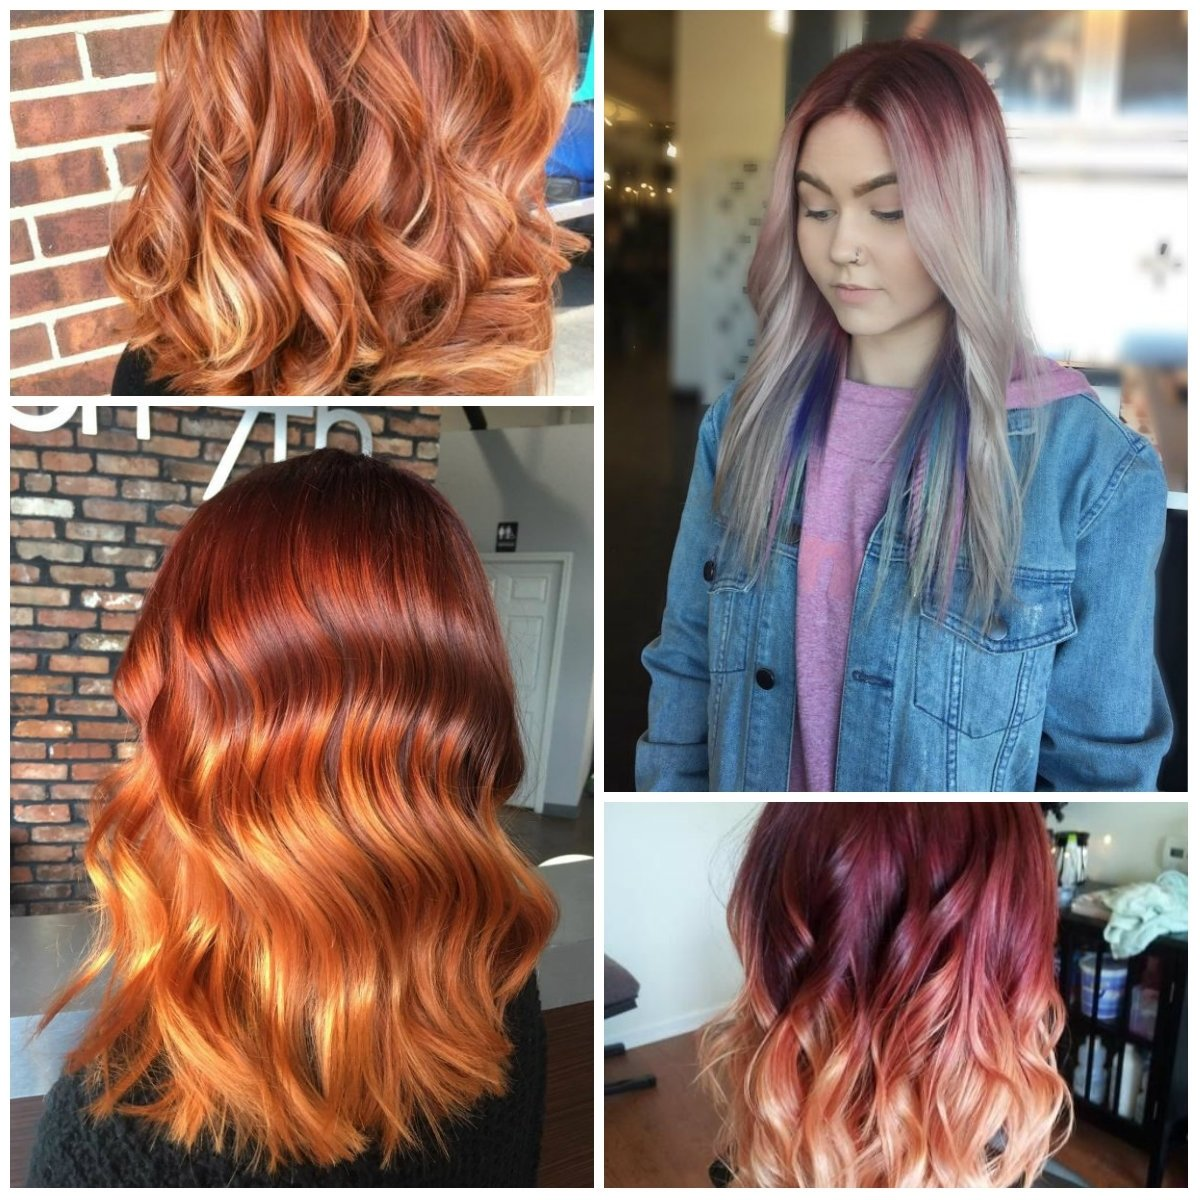 10 Most Recommended Red And Blonde Hair Ideas red blonde hair color ideas for 2017 best hair color ideas 3 2020